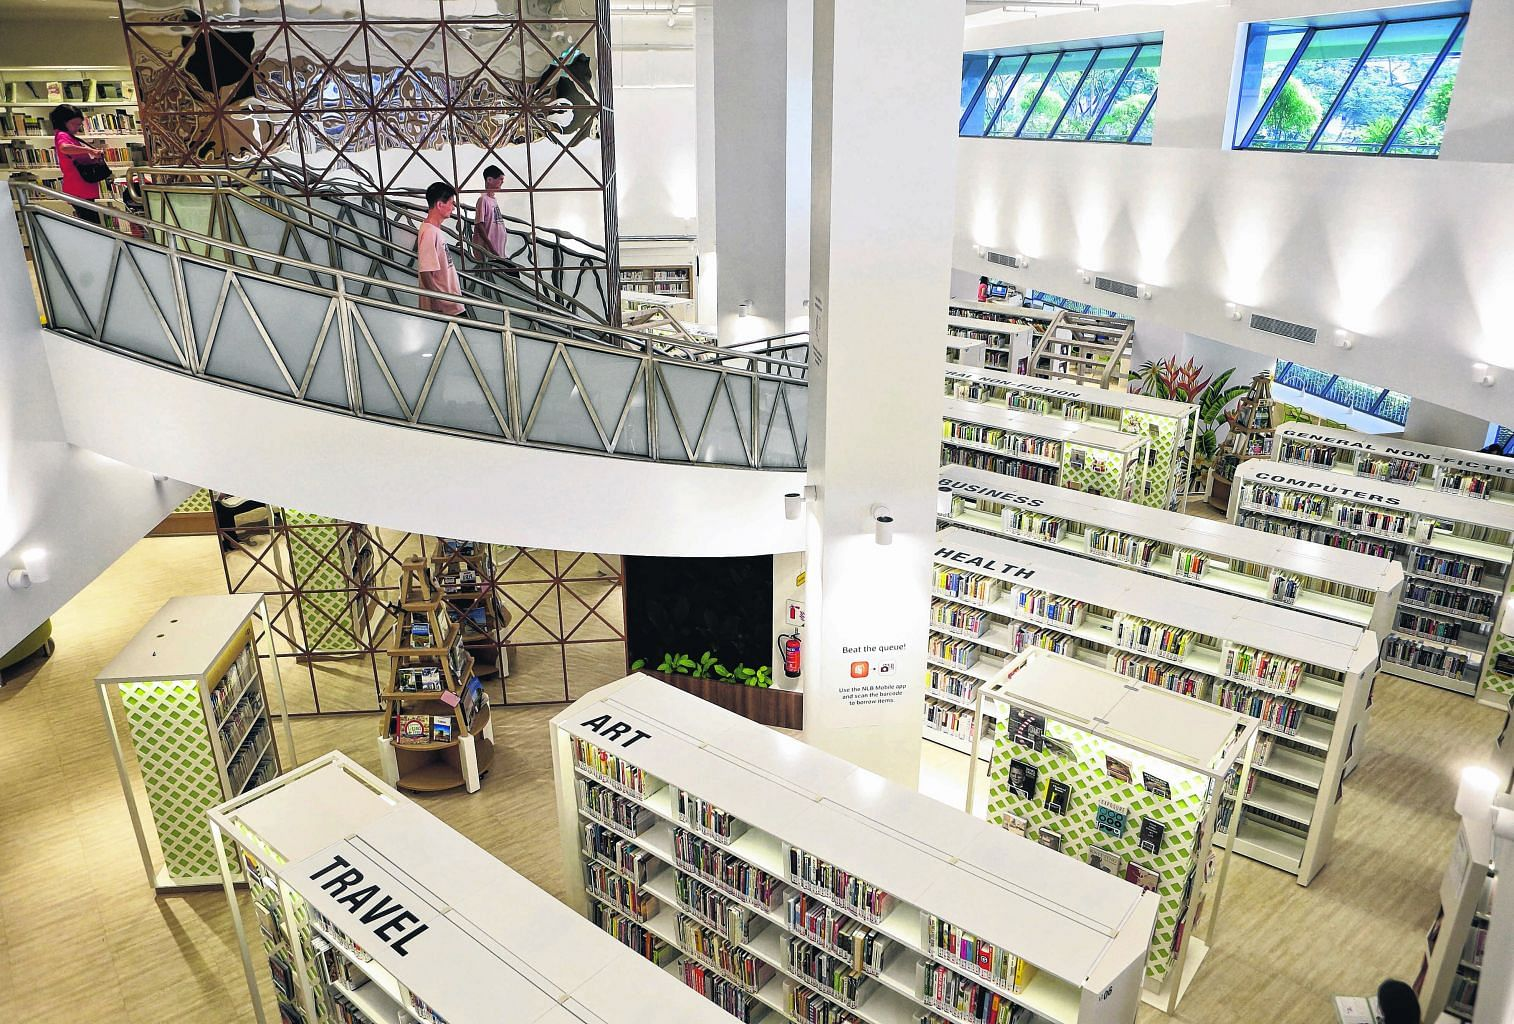 Bedok Public Library is at Heartbeat@ Bedok, an integrated community hub with facilities such as a sports centre, polyclinic and retailers.